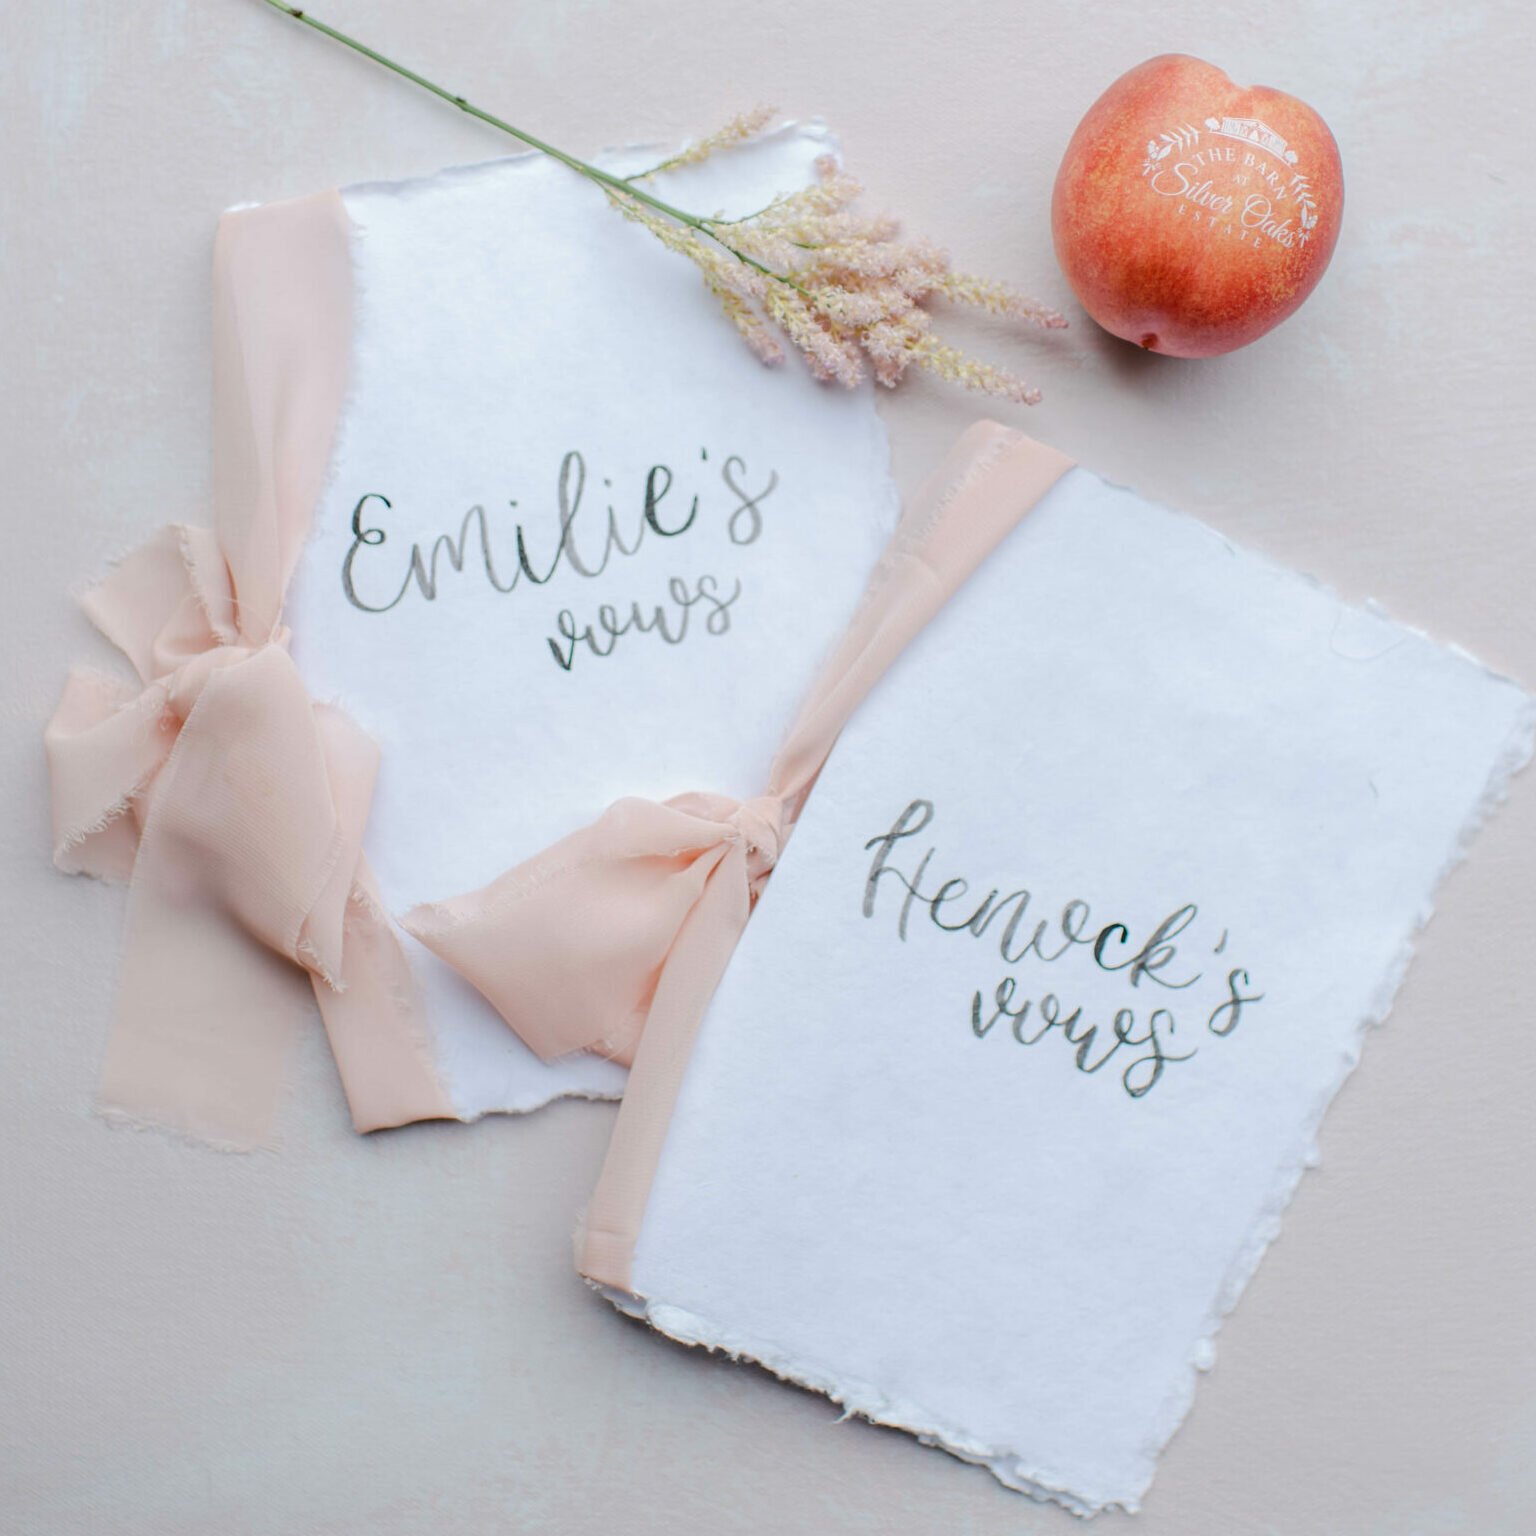 Wedding Vows and Branded Fun to Eat Fruit Wedding Favors Photo: Rachel Campbell Photography